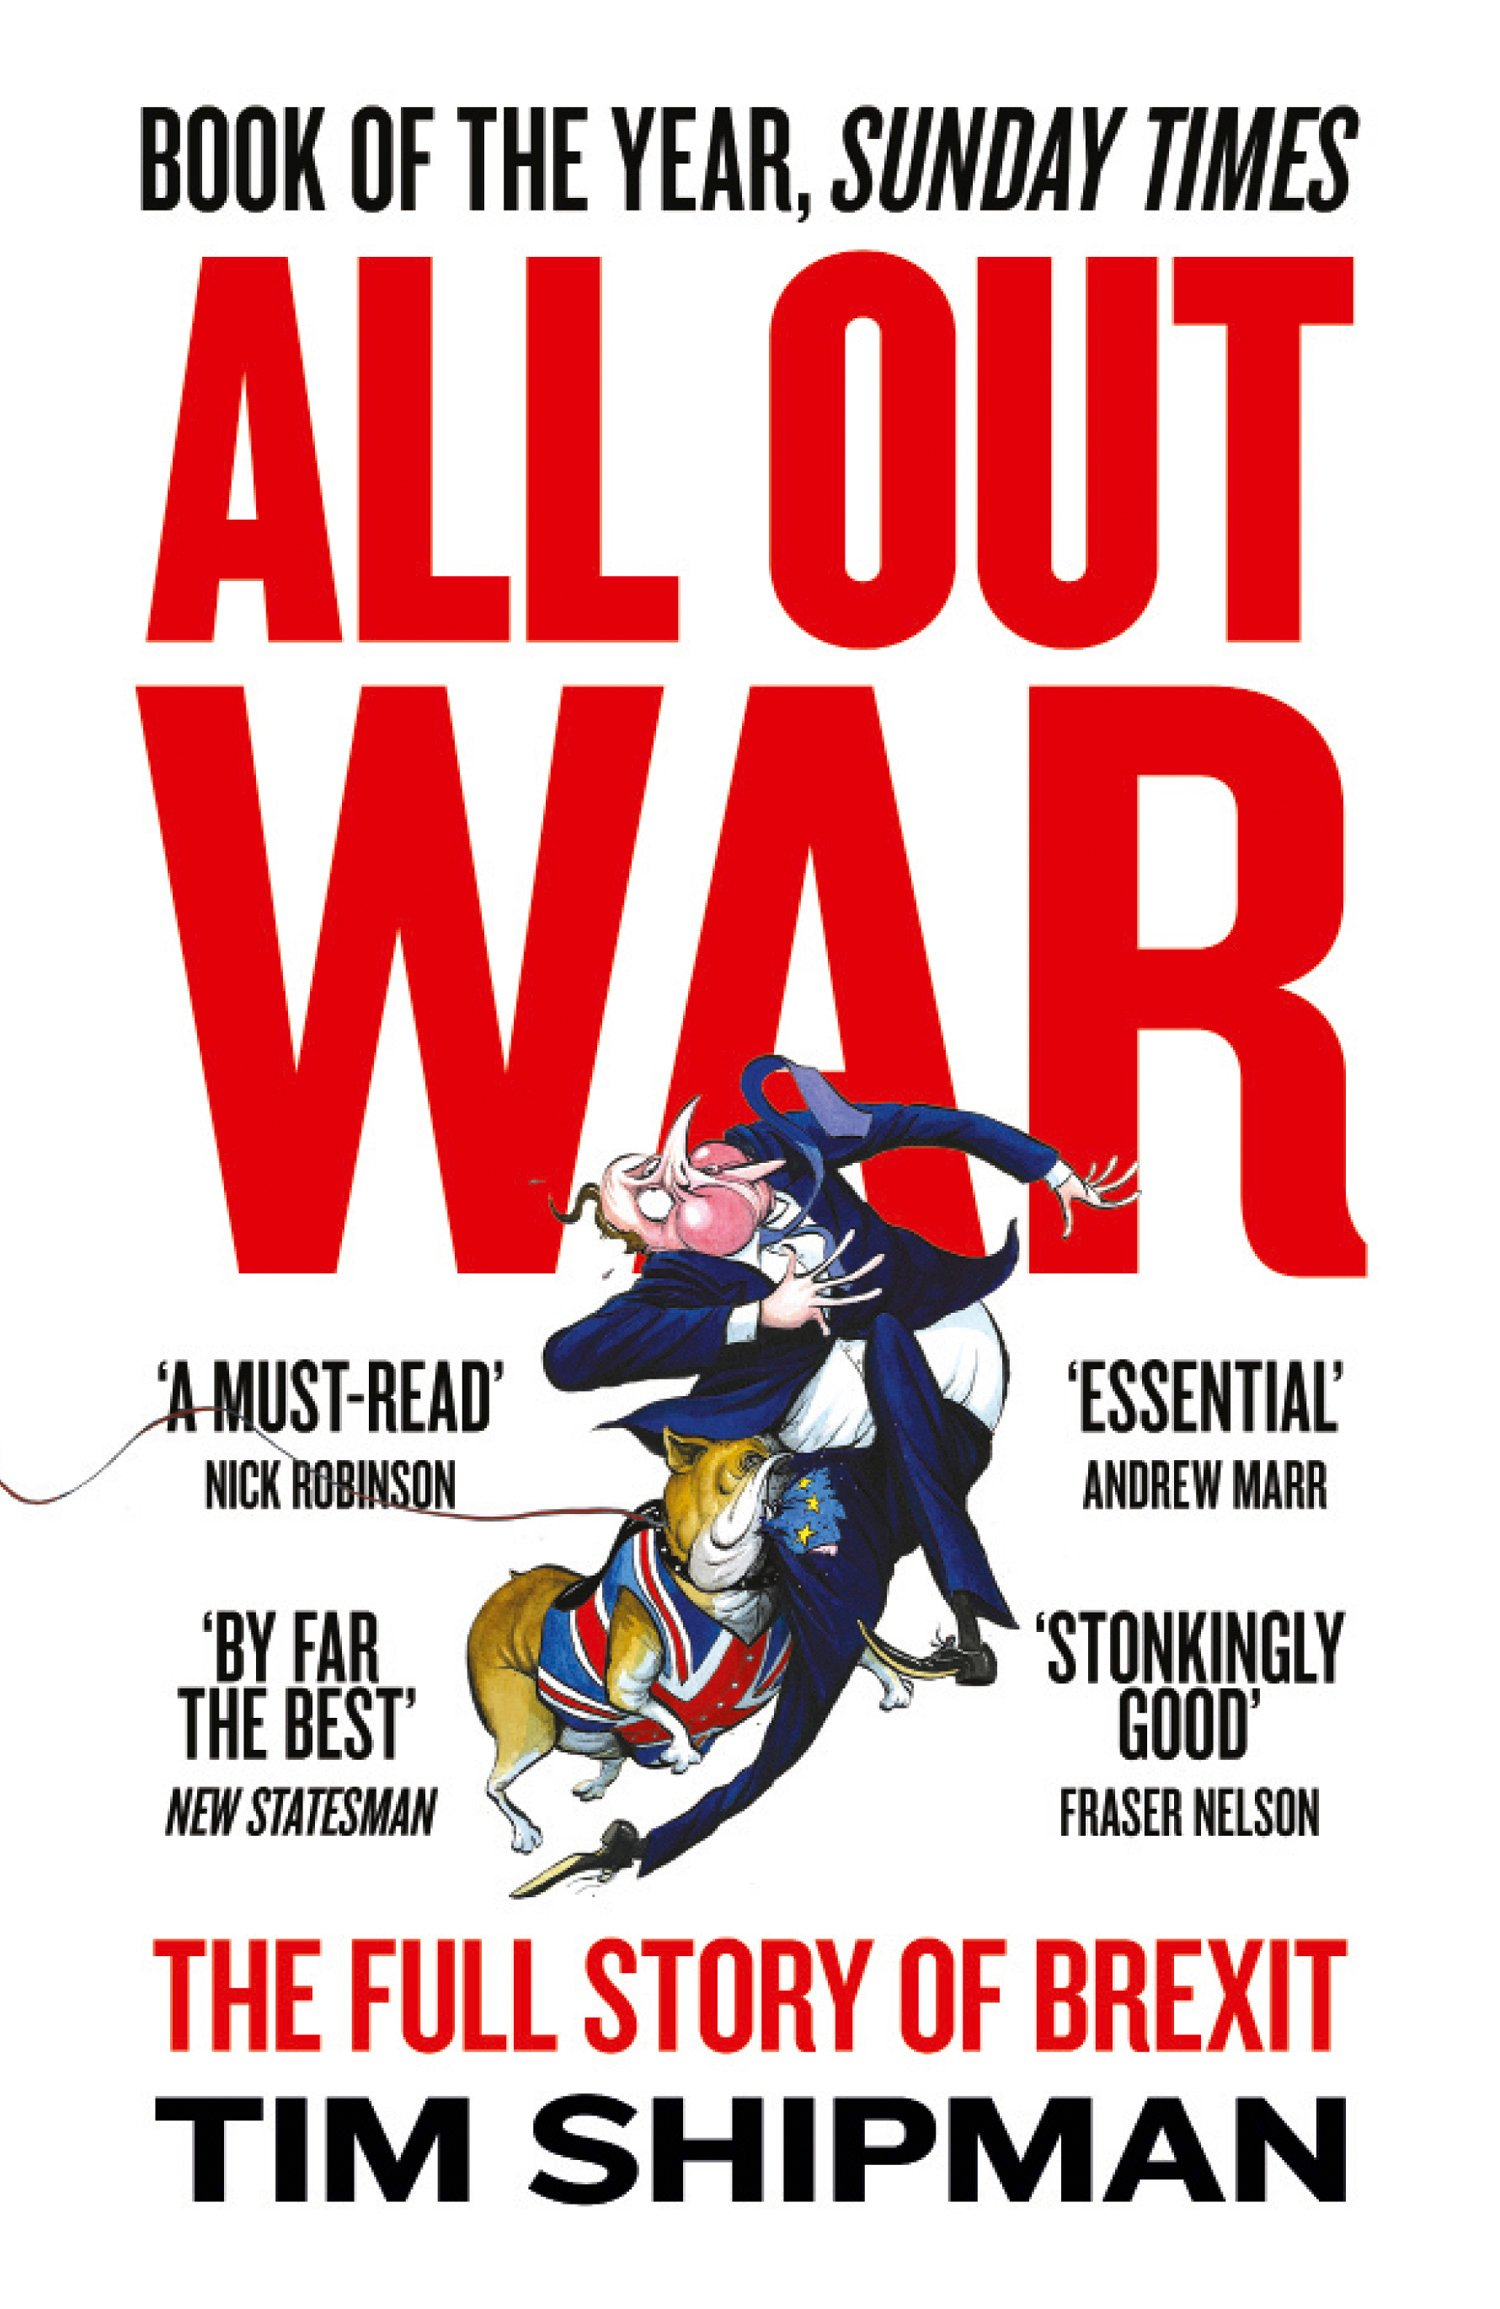 Discounted copies of All Out War: The Full Story of How Brexit Sank Britain's Political Class by Tim Shipman